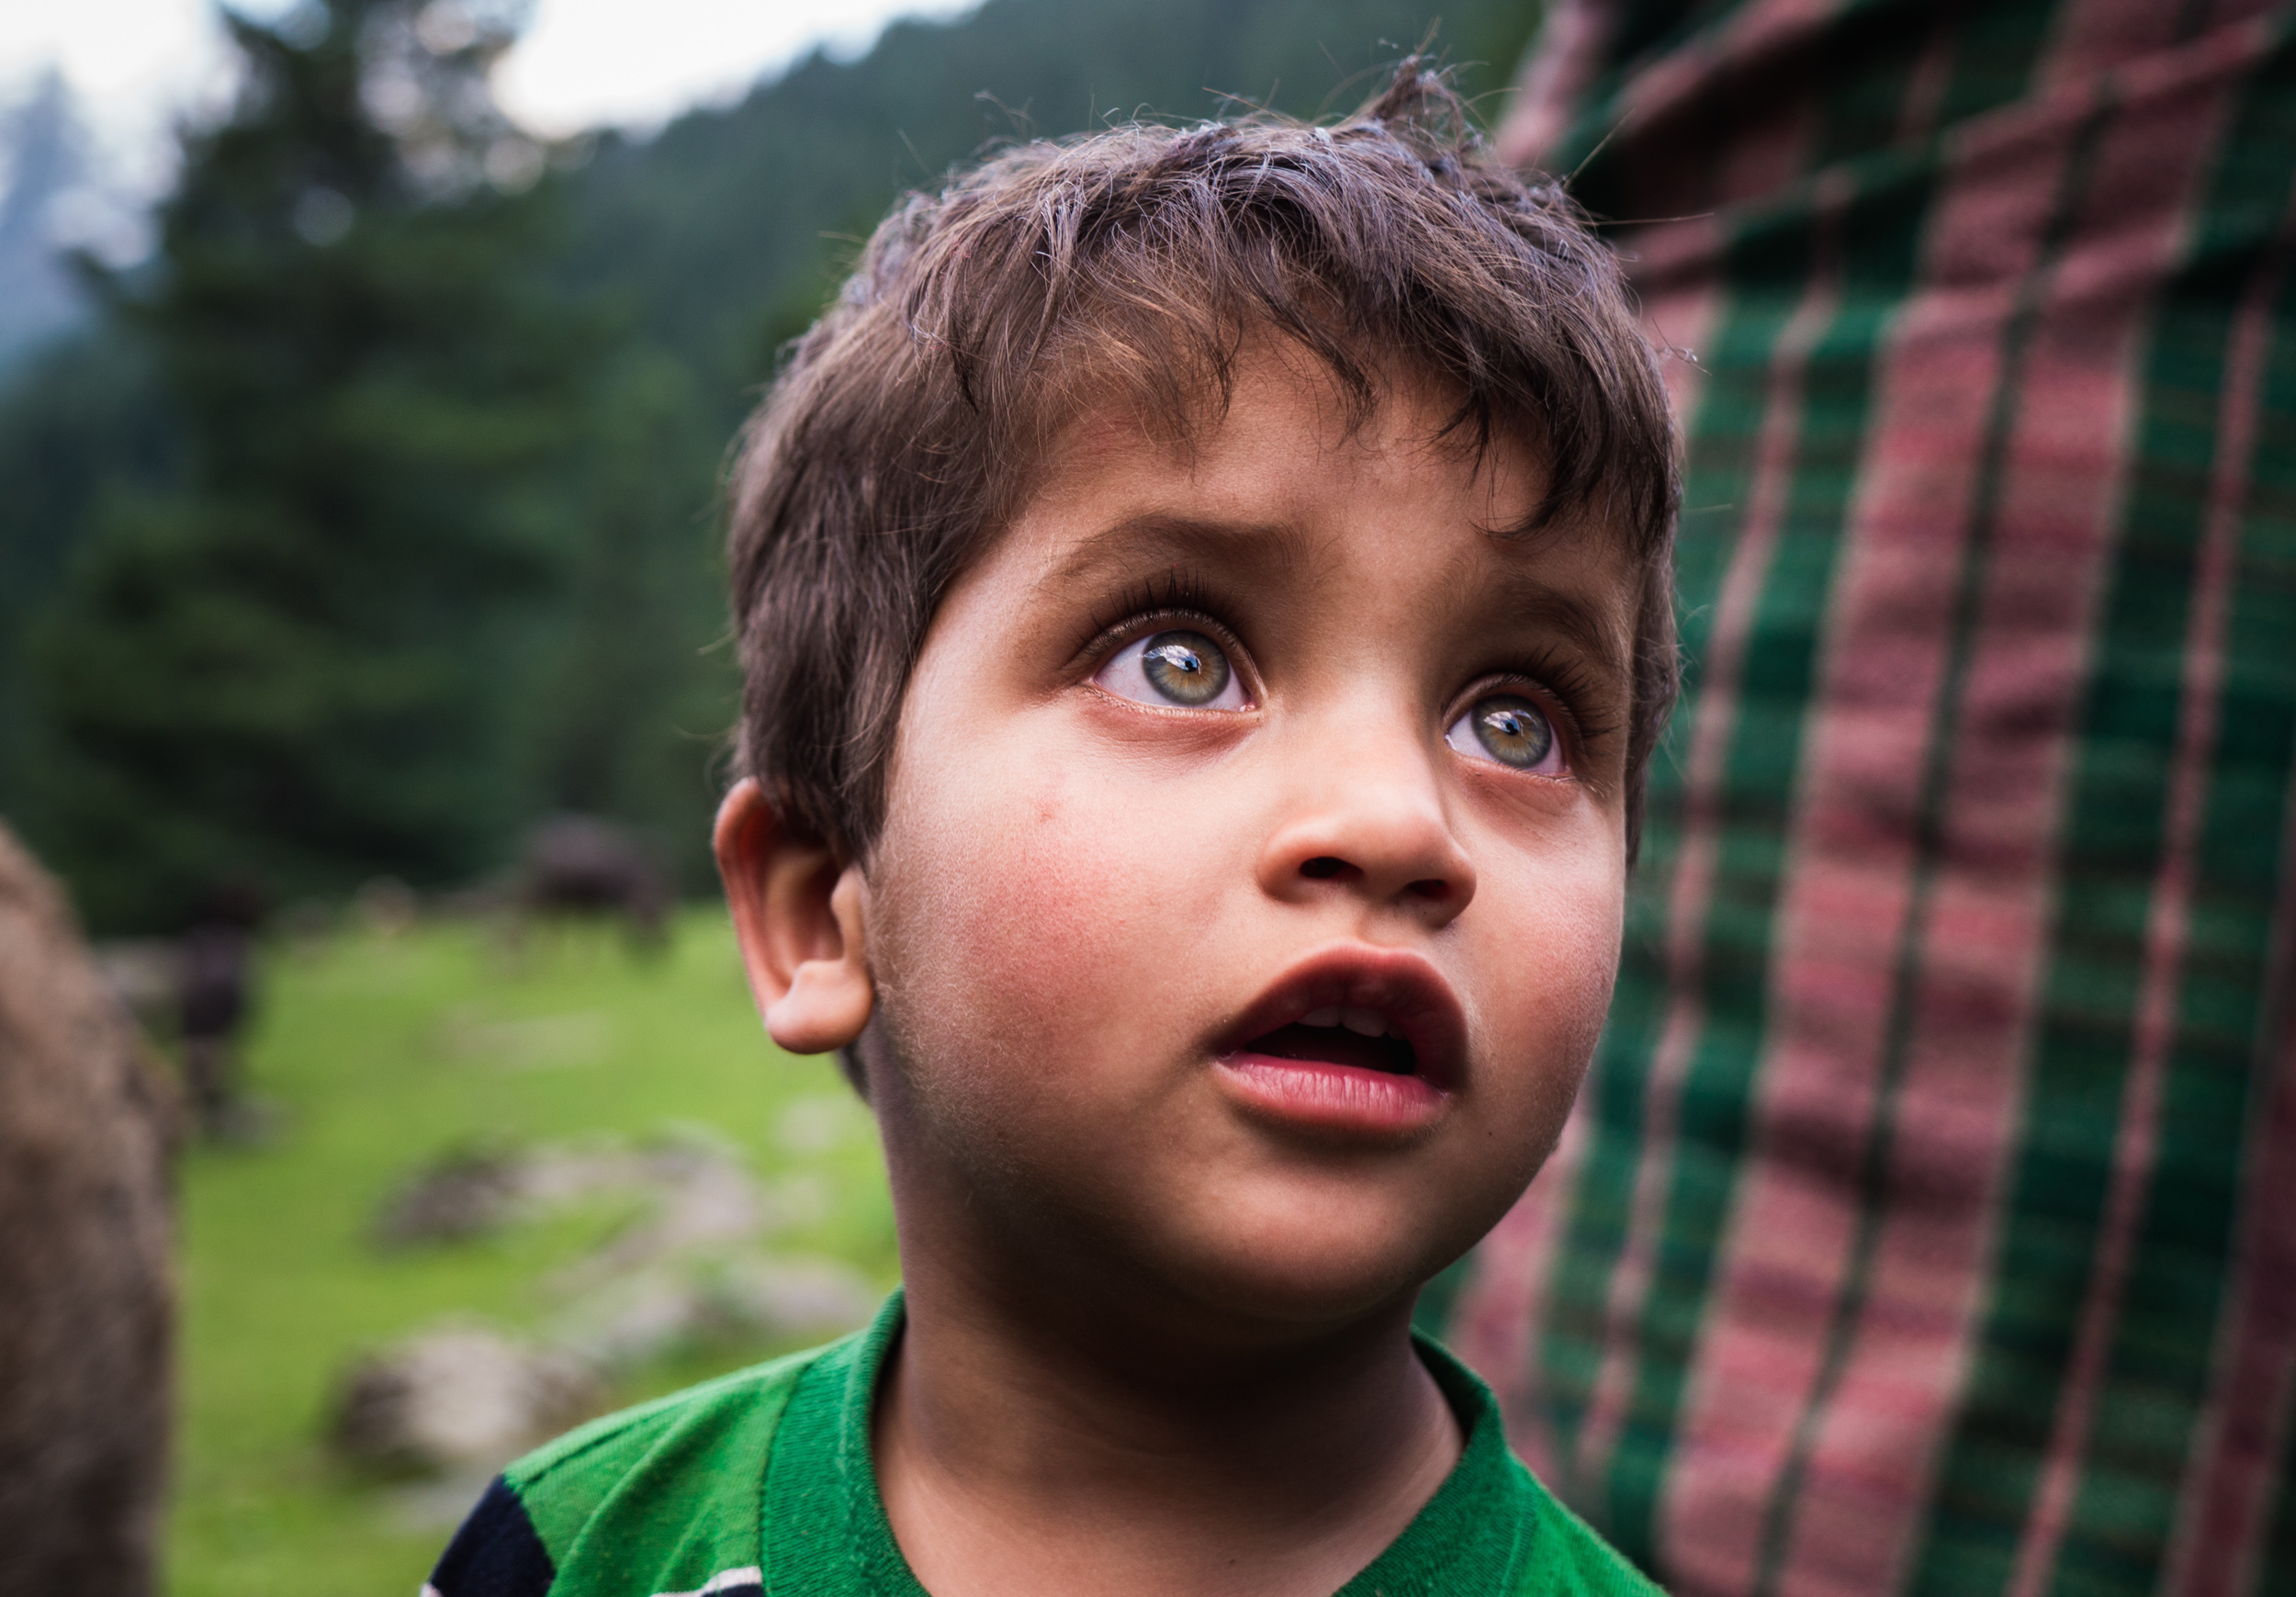 _2 Barkawal Boy, green Eyes portrait.jpg